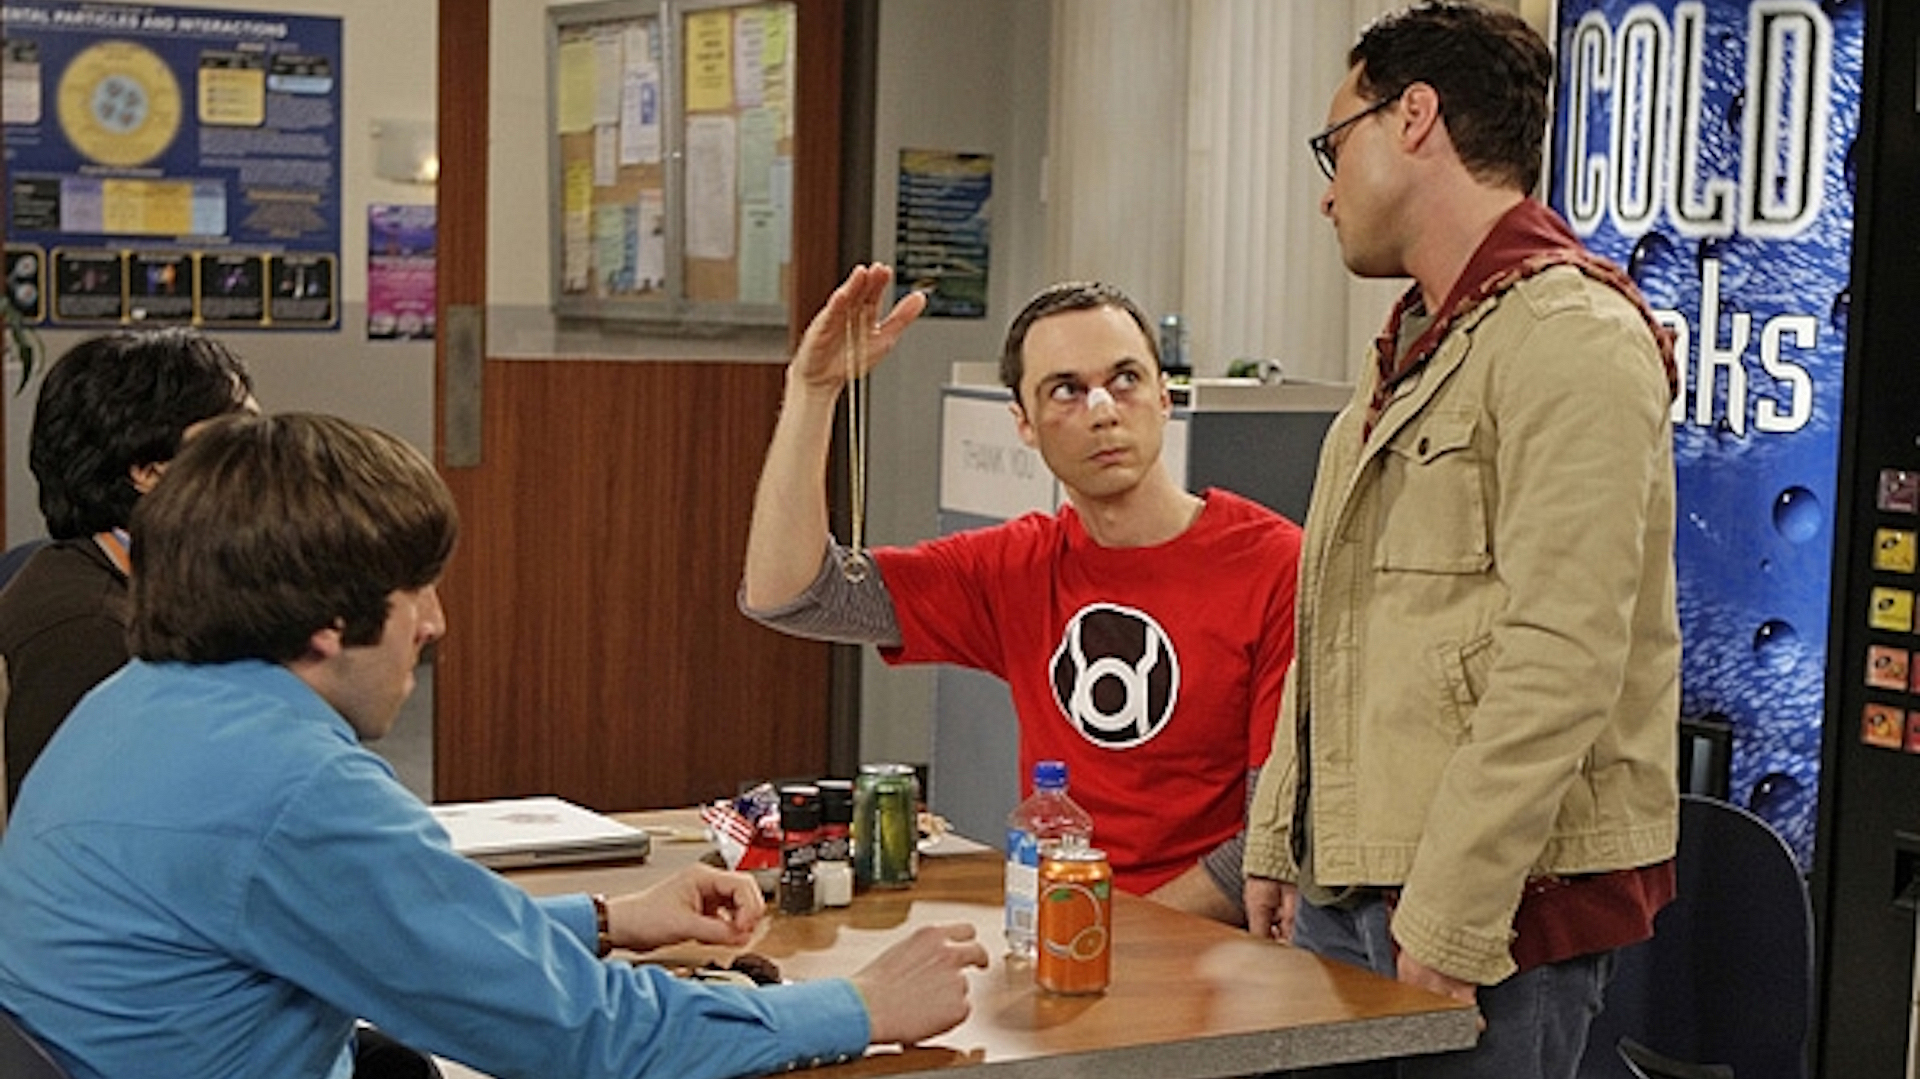 Sheldon Cooper's Red Lantern symbol shirt from The Big Bang Theory